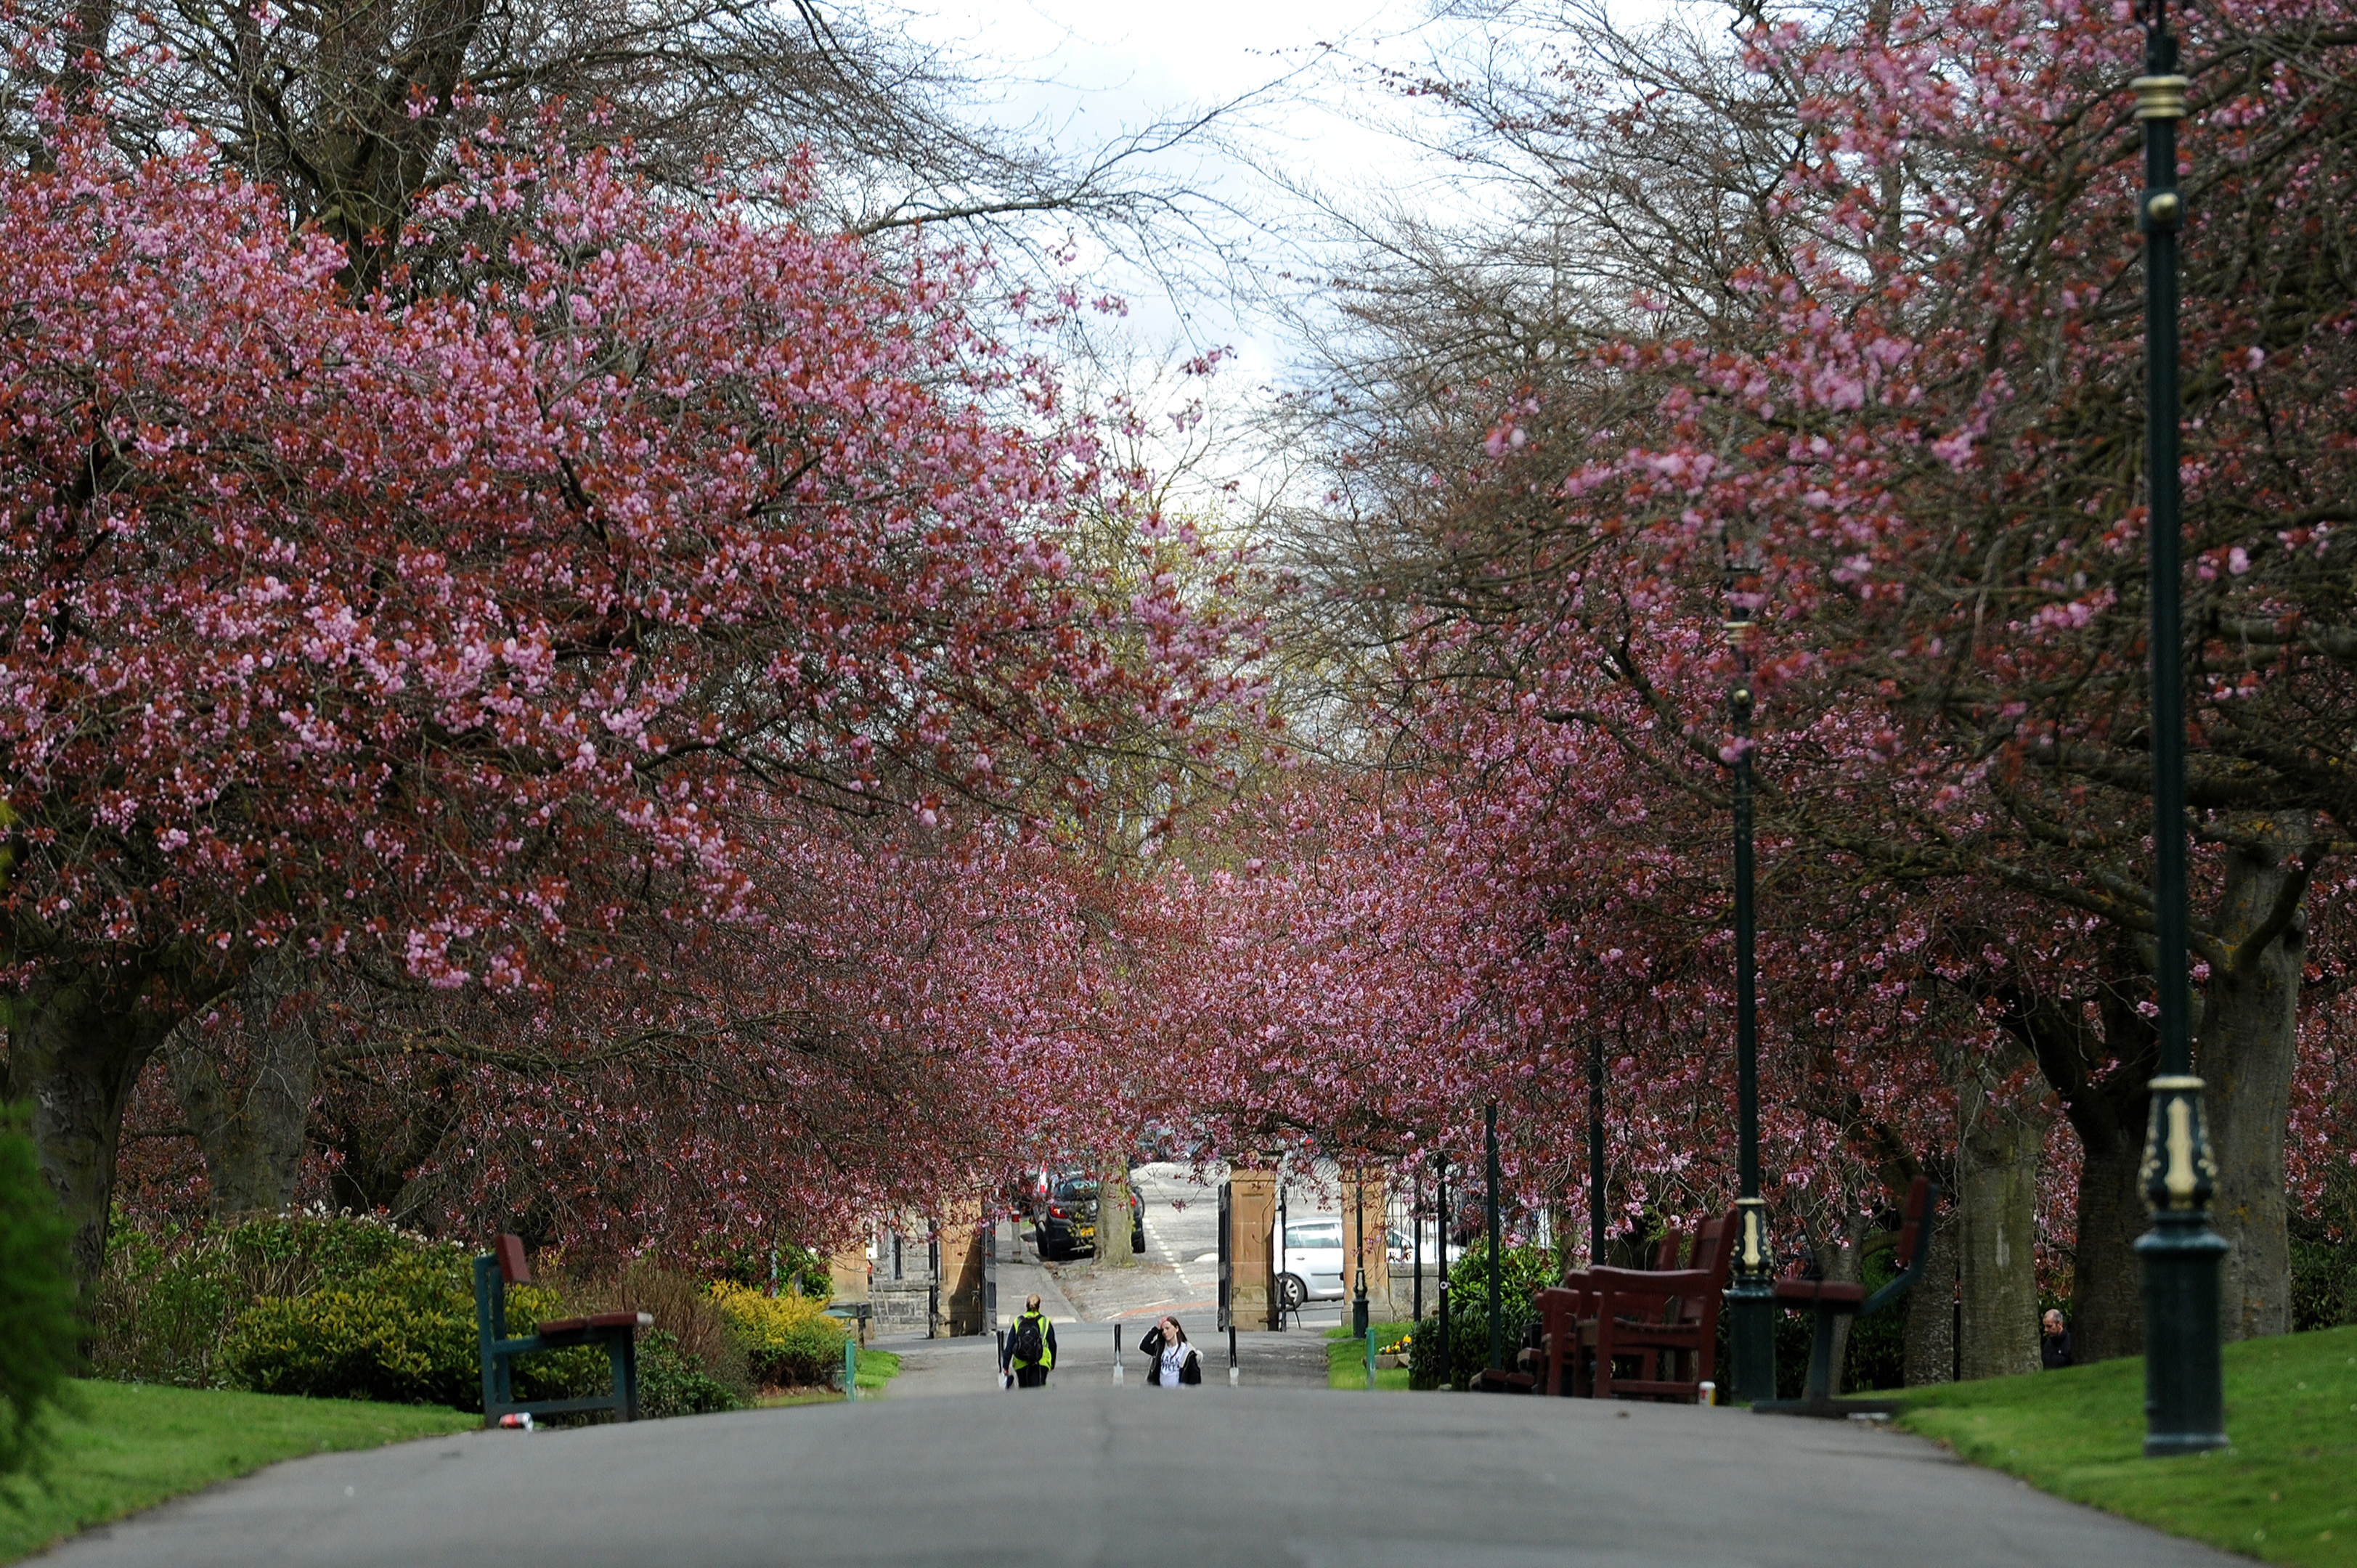 Blossom on the trees in Pittencrieff Park, Dunfermline.